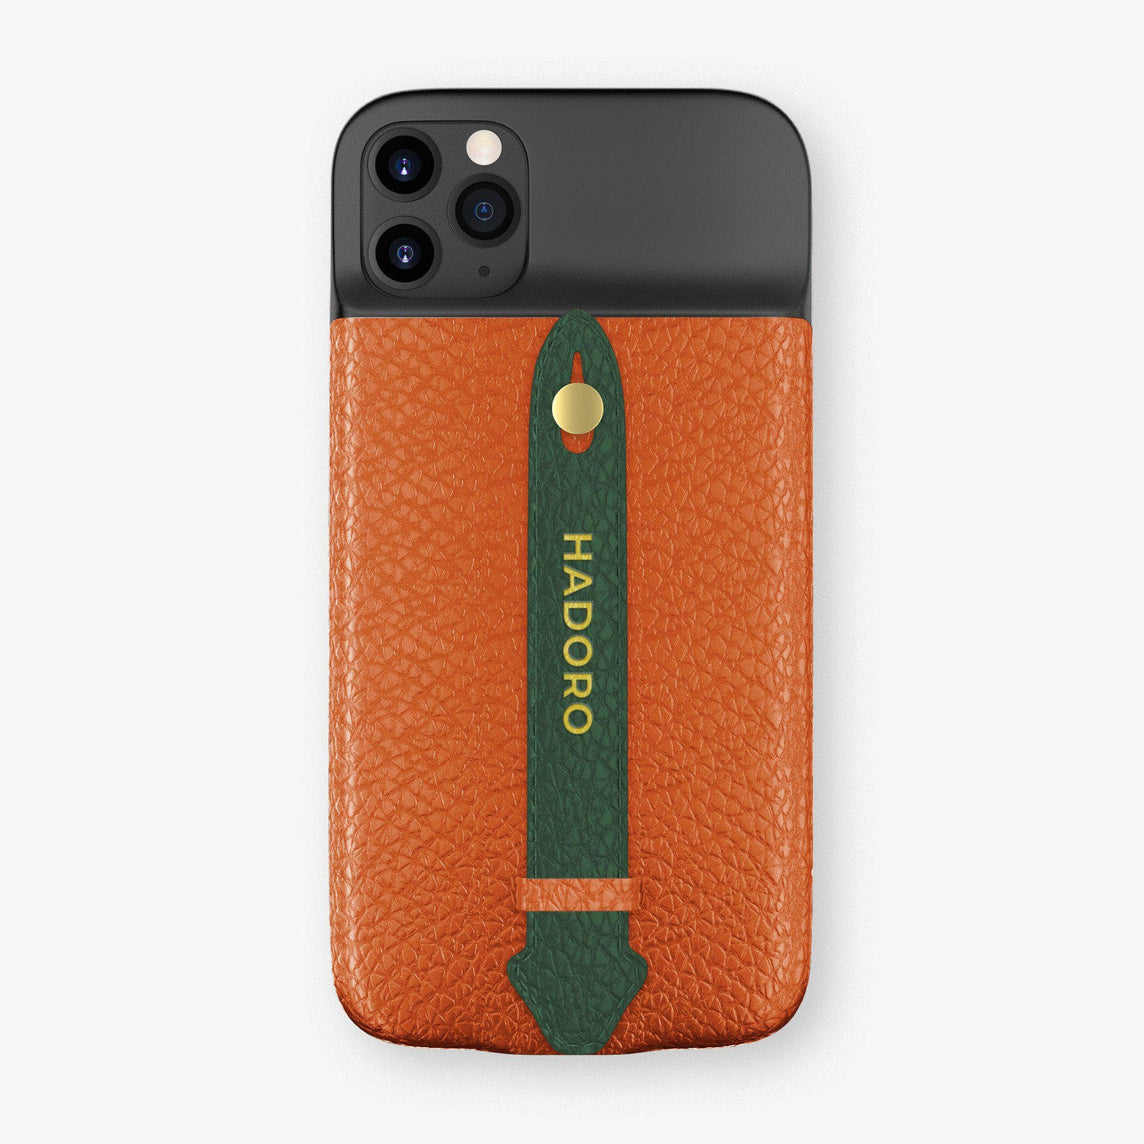 Calfskin Battery Finger Case for iPhone 11 Pro Max | Orange/Green - Yellow Gold without-personalization